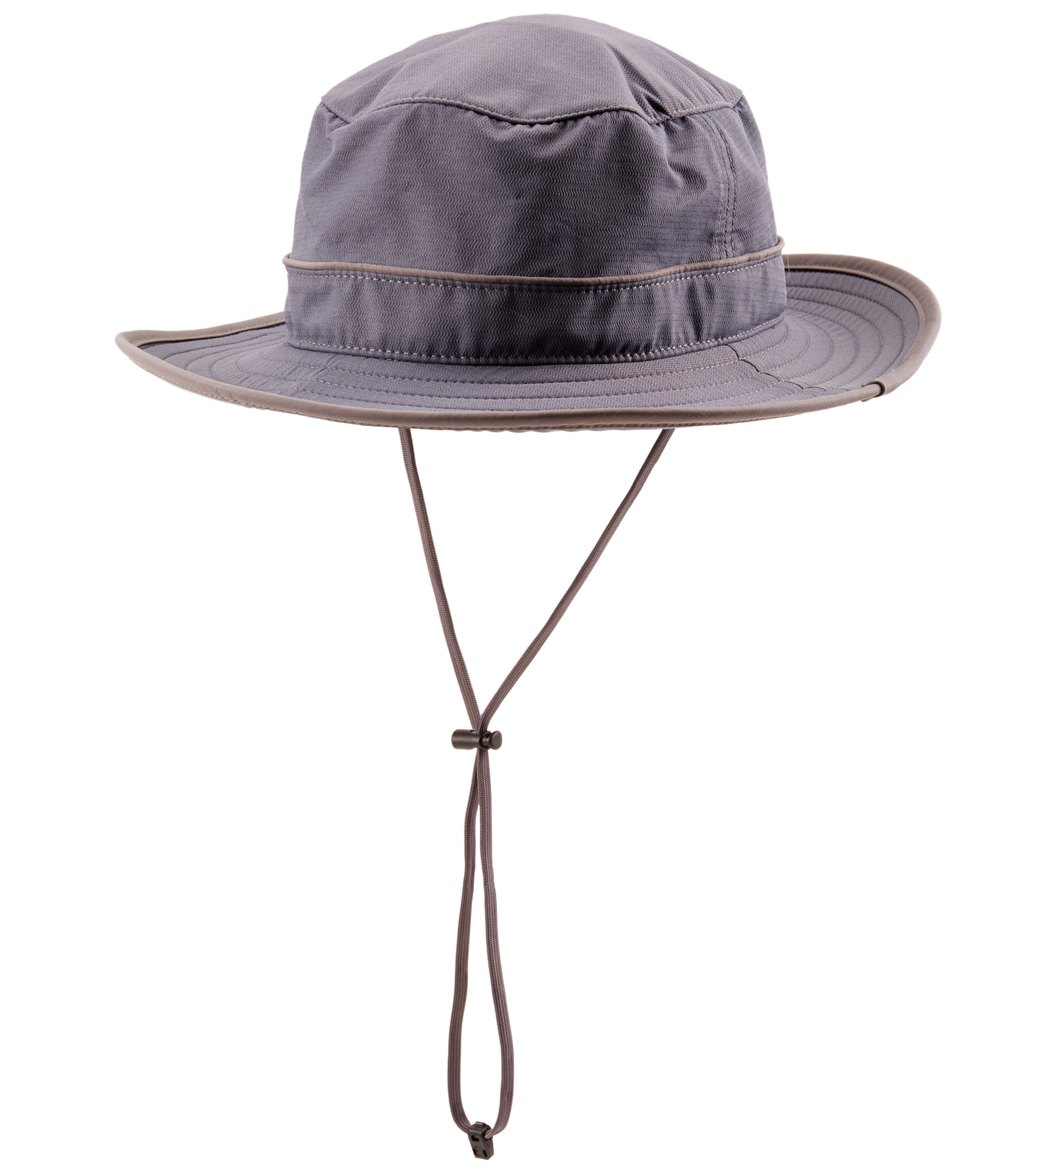 c39ae70b8e Sunday Afternoons Men s Trailhead Boonie Hat at SwimOutlet.com